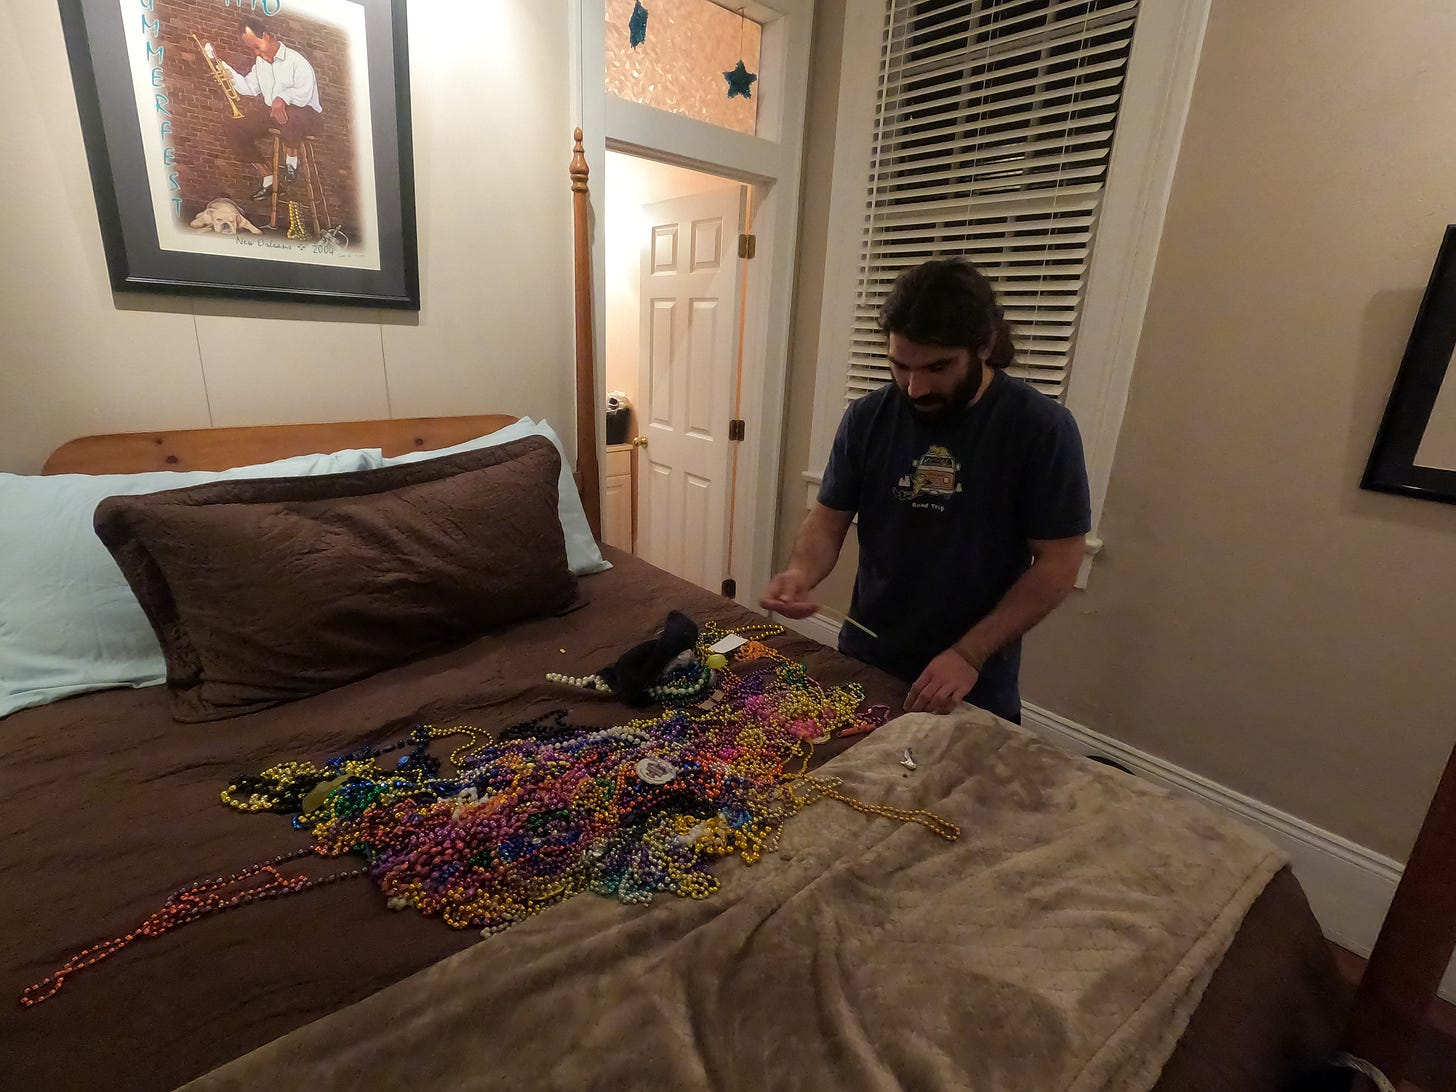 anthony looks down at the bed covered in hundred of colorful beads